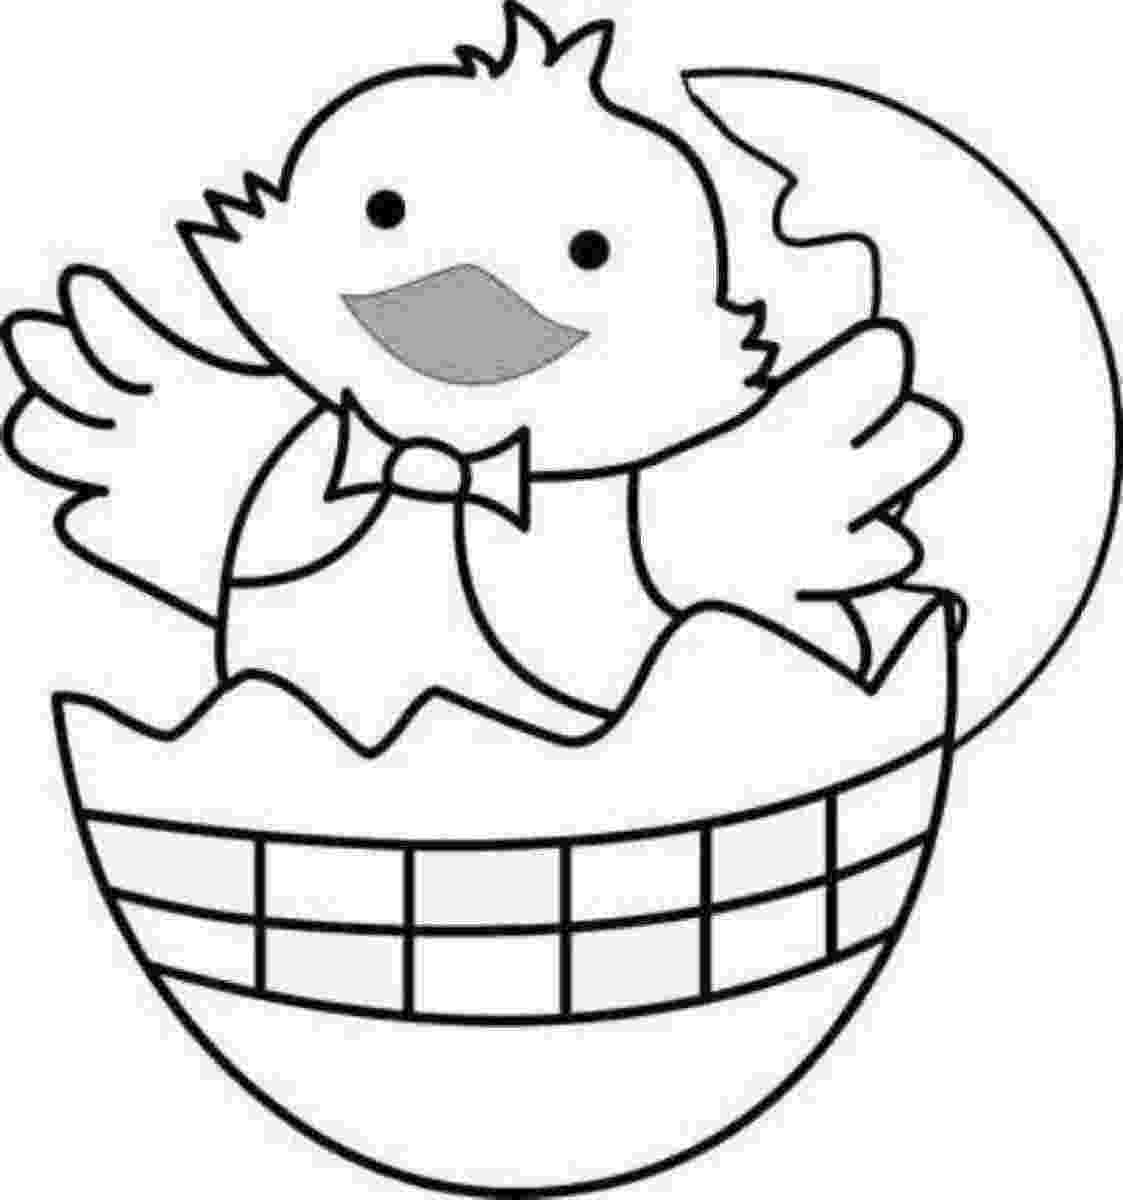 easter chick colouring free easter coloring pages for kids 123 kids fun apps colouring chick easter